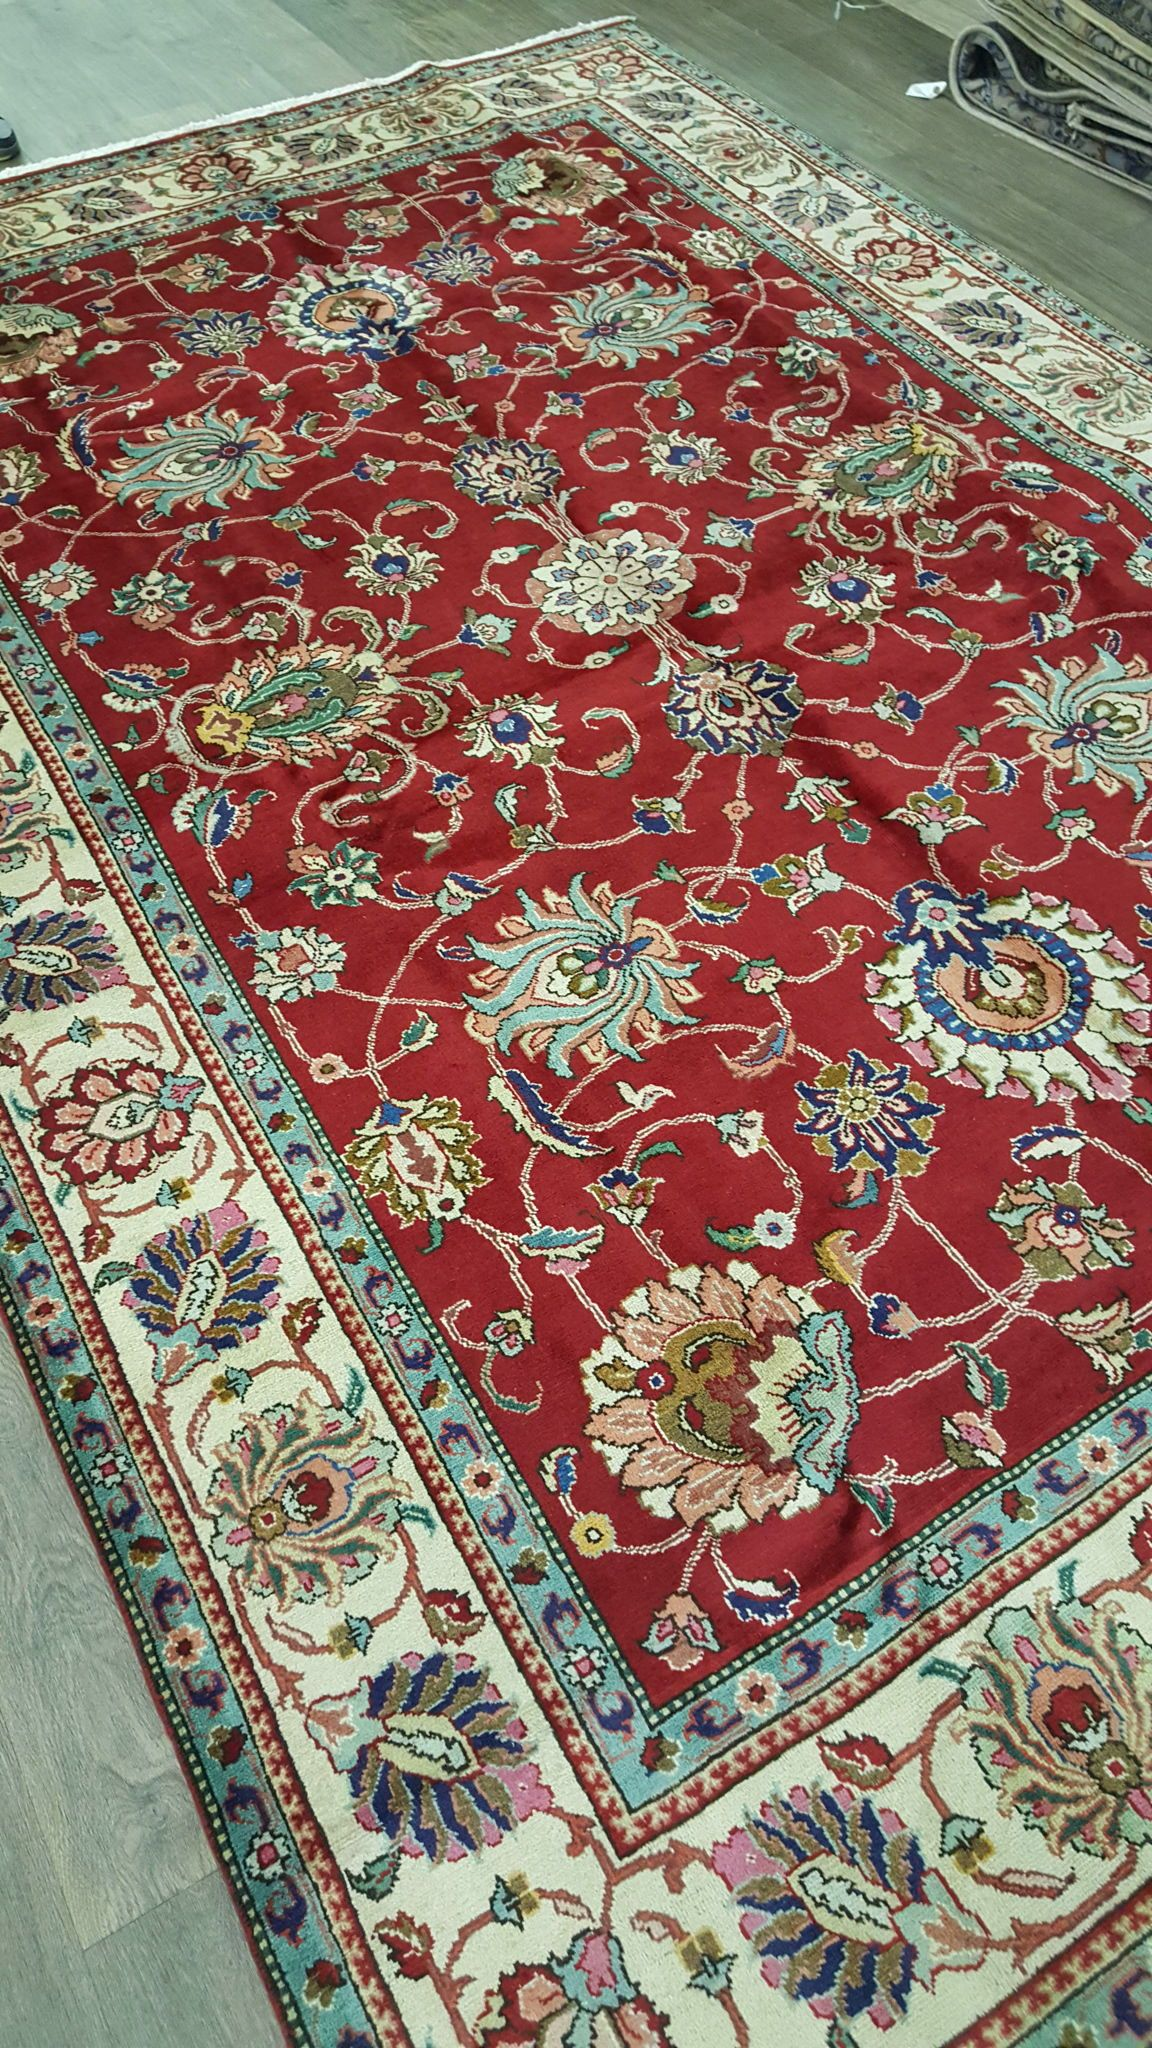 Small 100 Fine Wool Vibrant Colors Oriental Handmade Area Rug Authentic Affordable Persian Area Rug Magic Rugs Persian Area Rugs Affordable Area Rugs Rugs